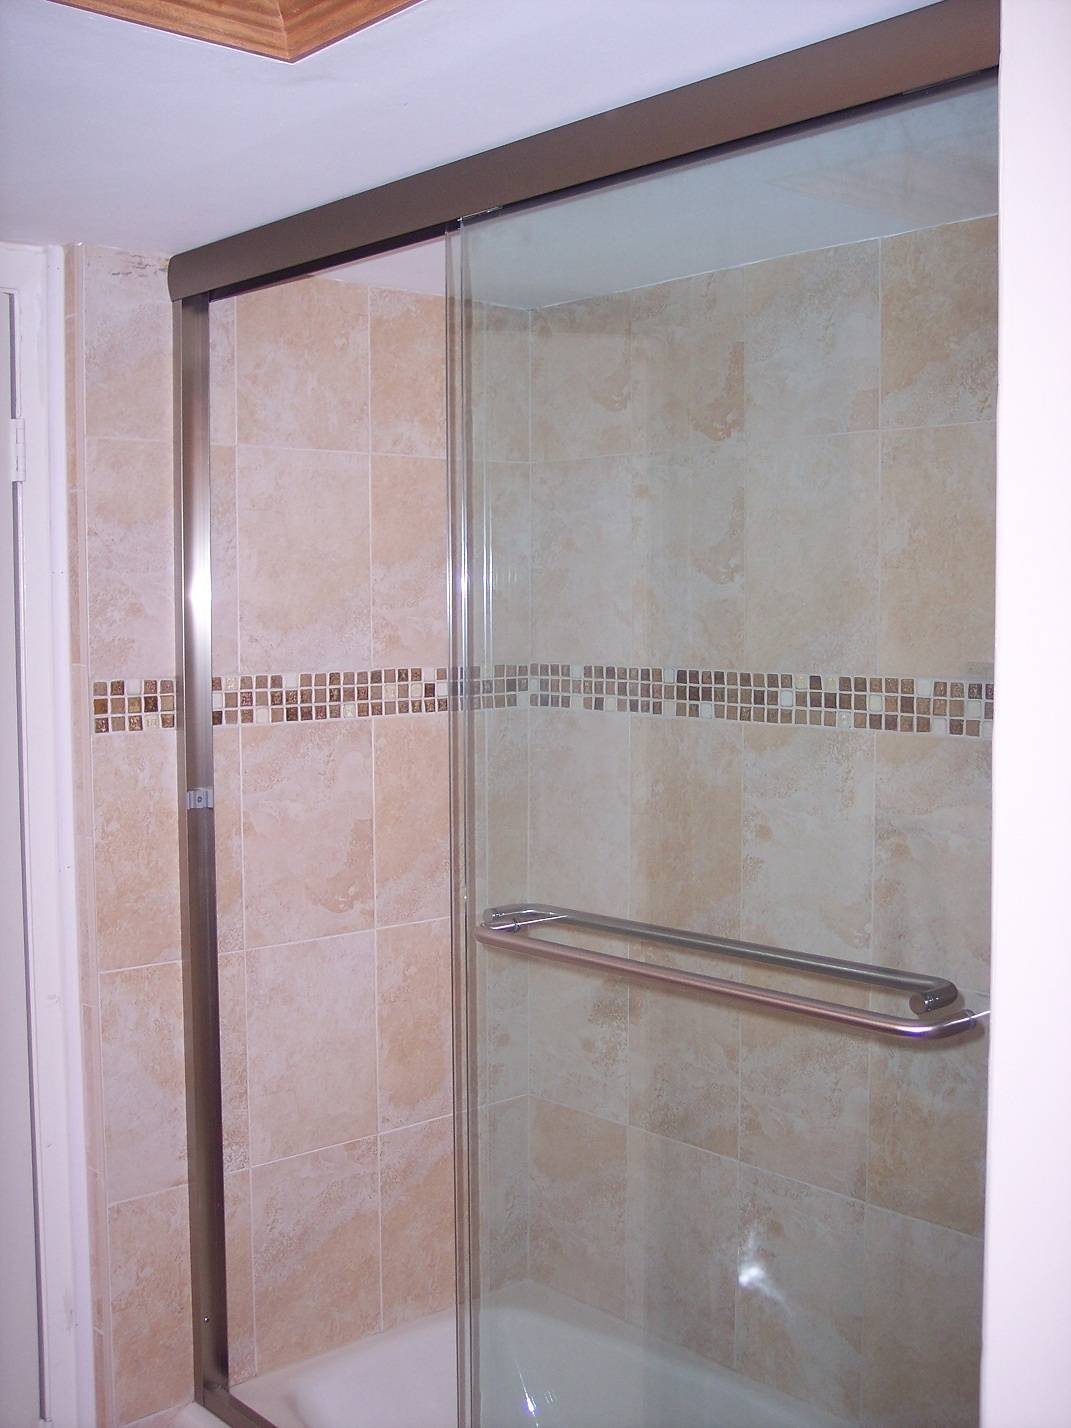 New features in the shower.